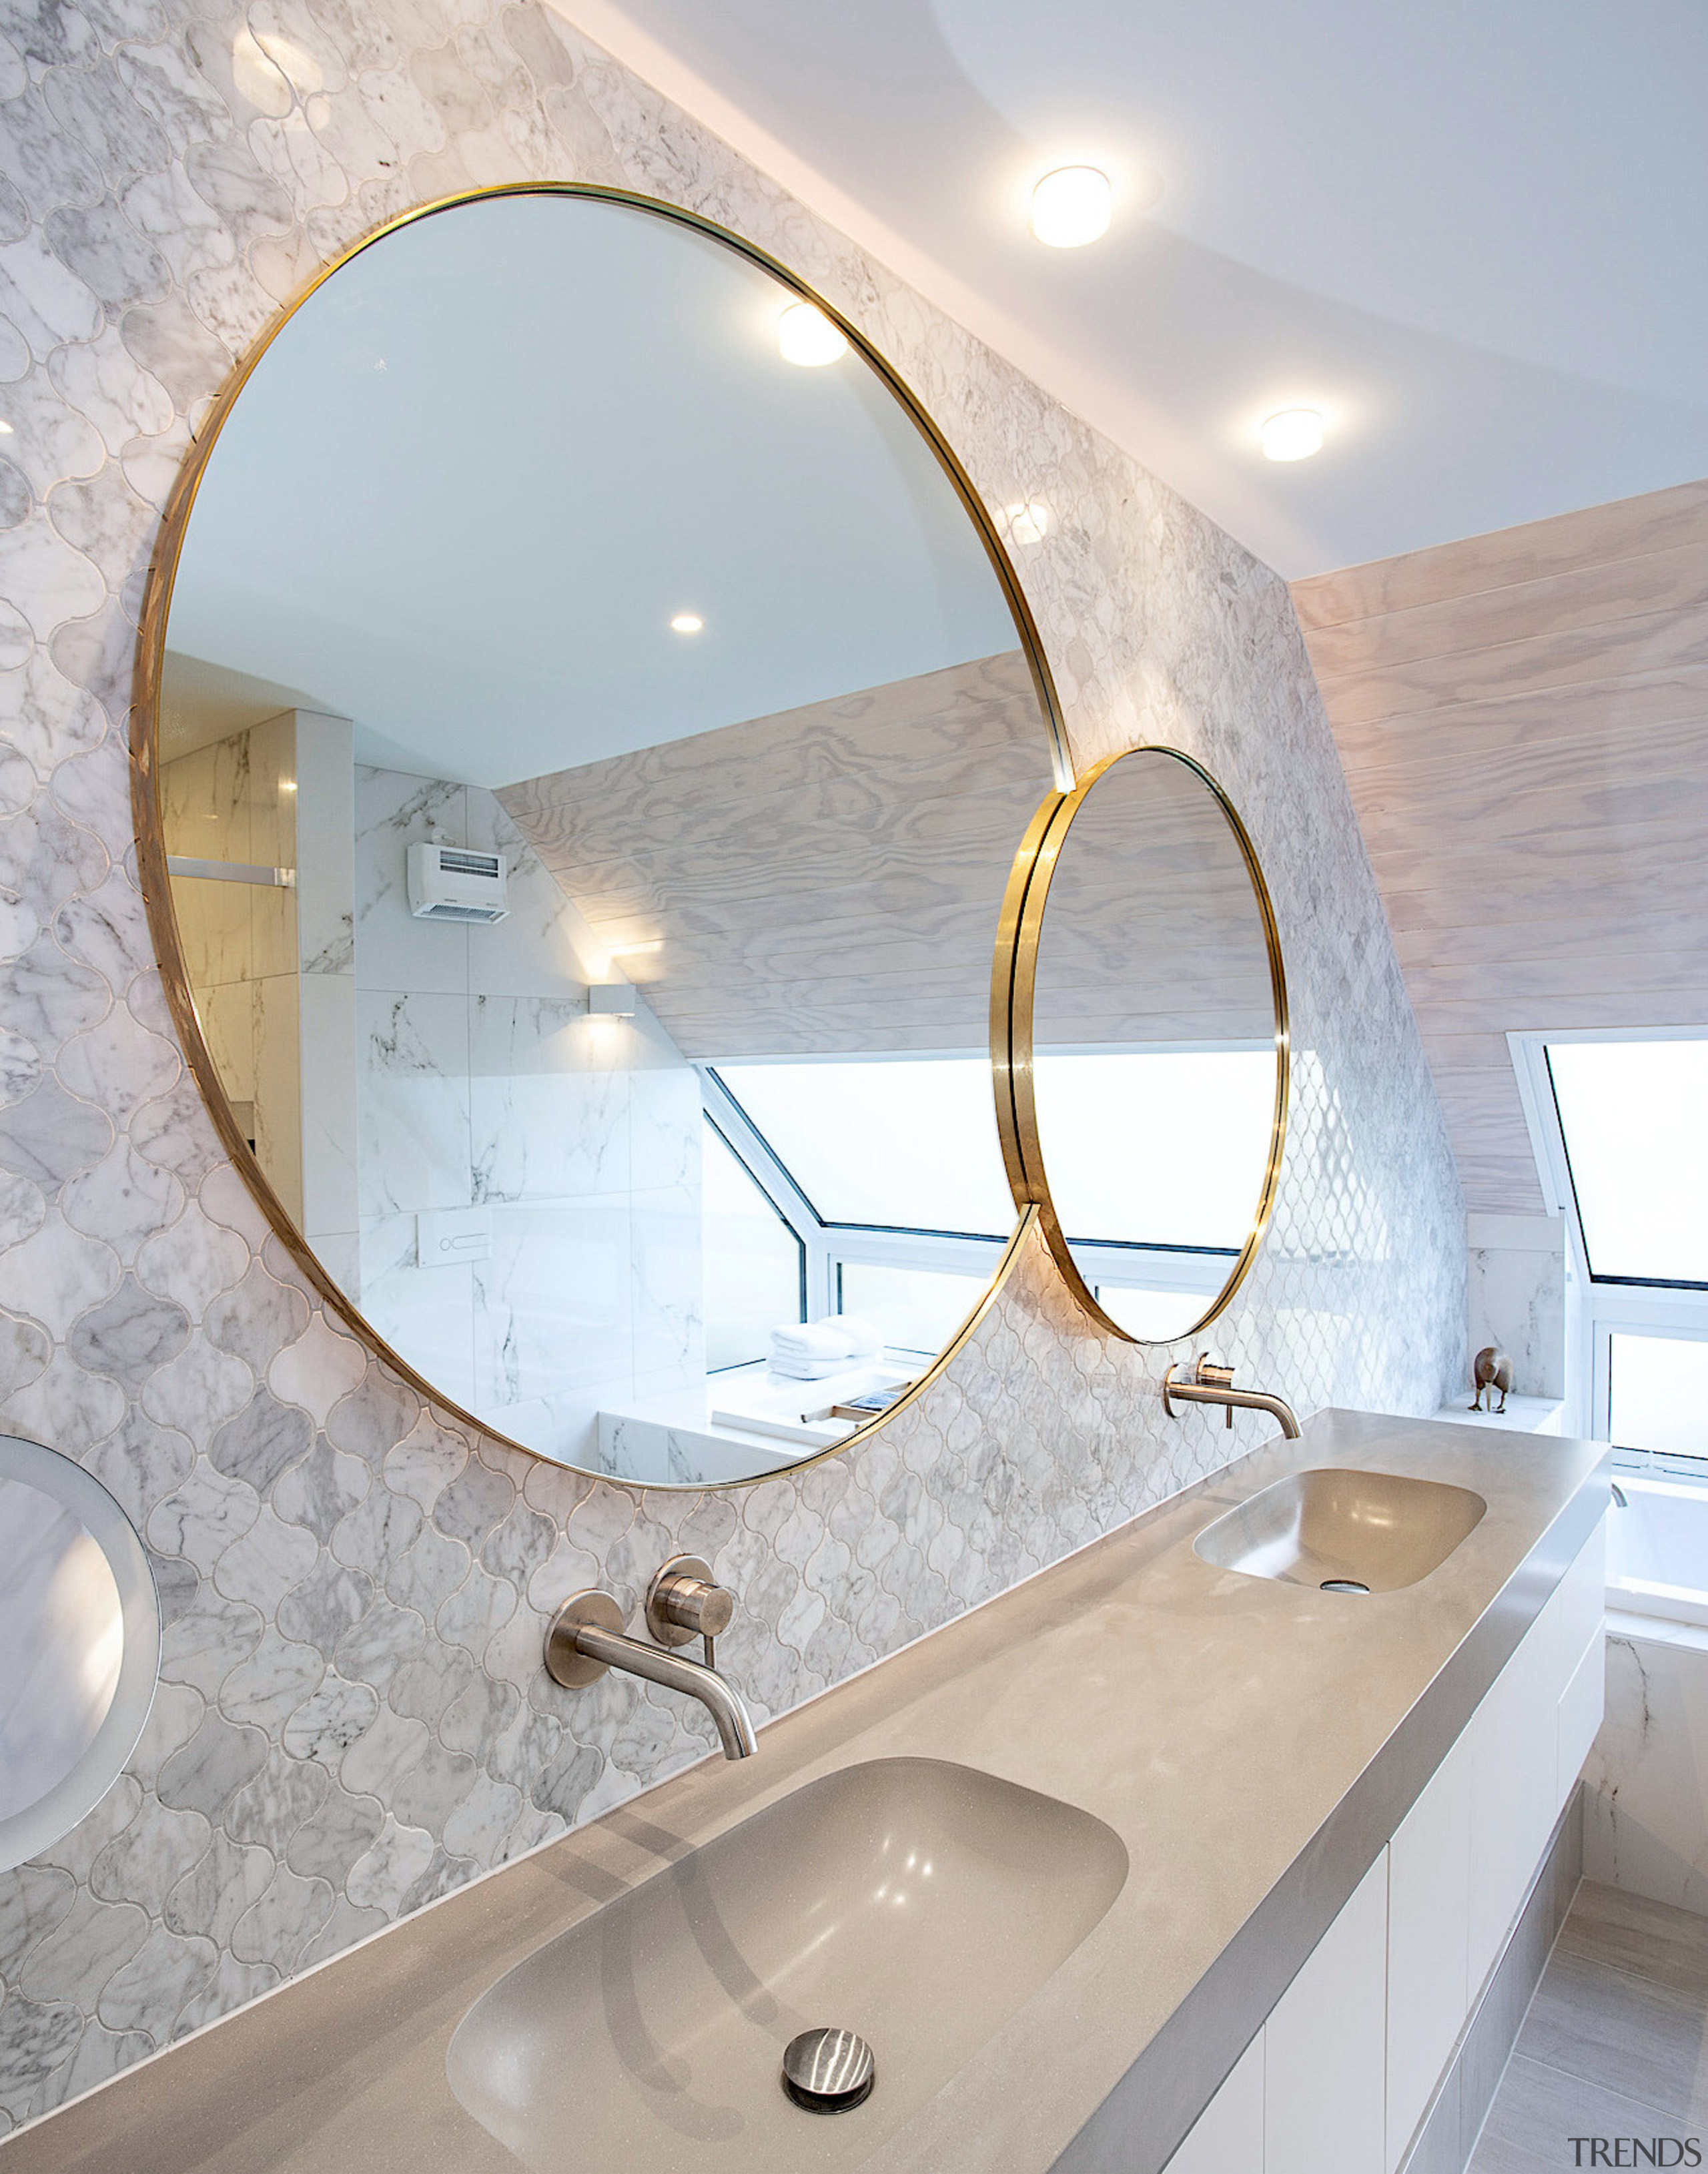 Two mirrors co-joined by one brass frame create architecture, bathroom, bathroom sink, ceiling, daylighting, floor, home, house, interior design, lighting, marble, mirror, plumbing fixture, property, real estate, room, sink, tap, tile, gray